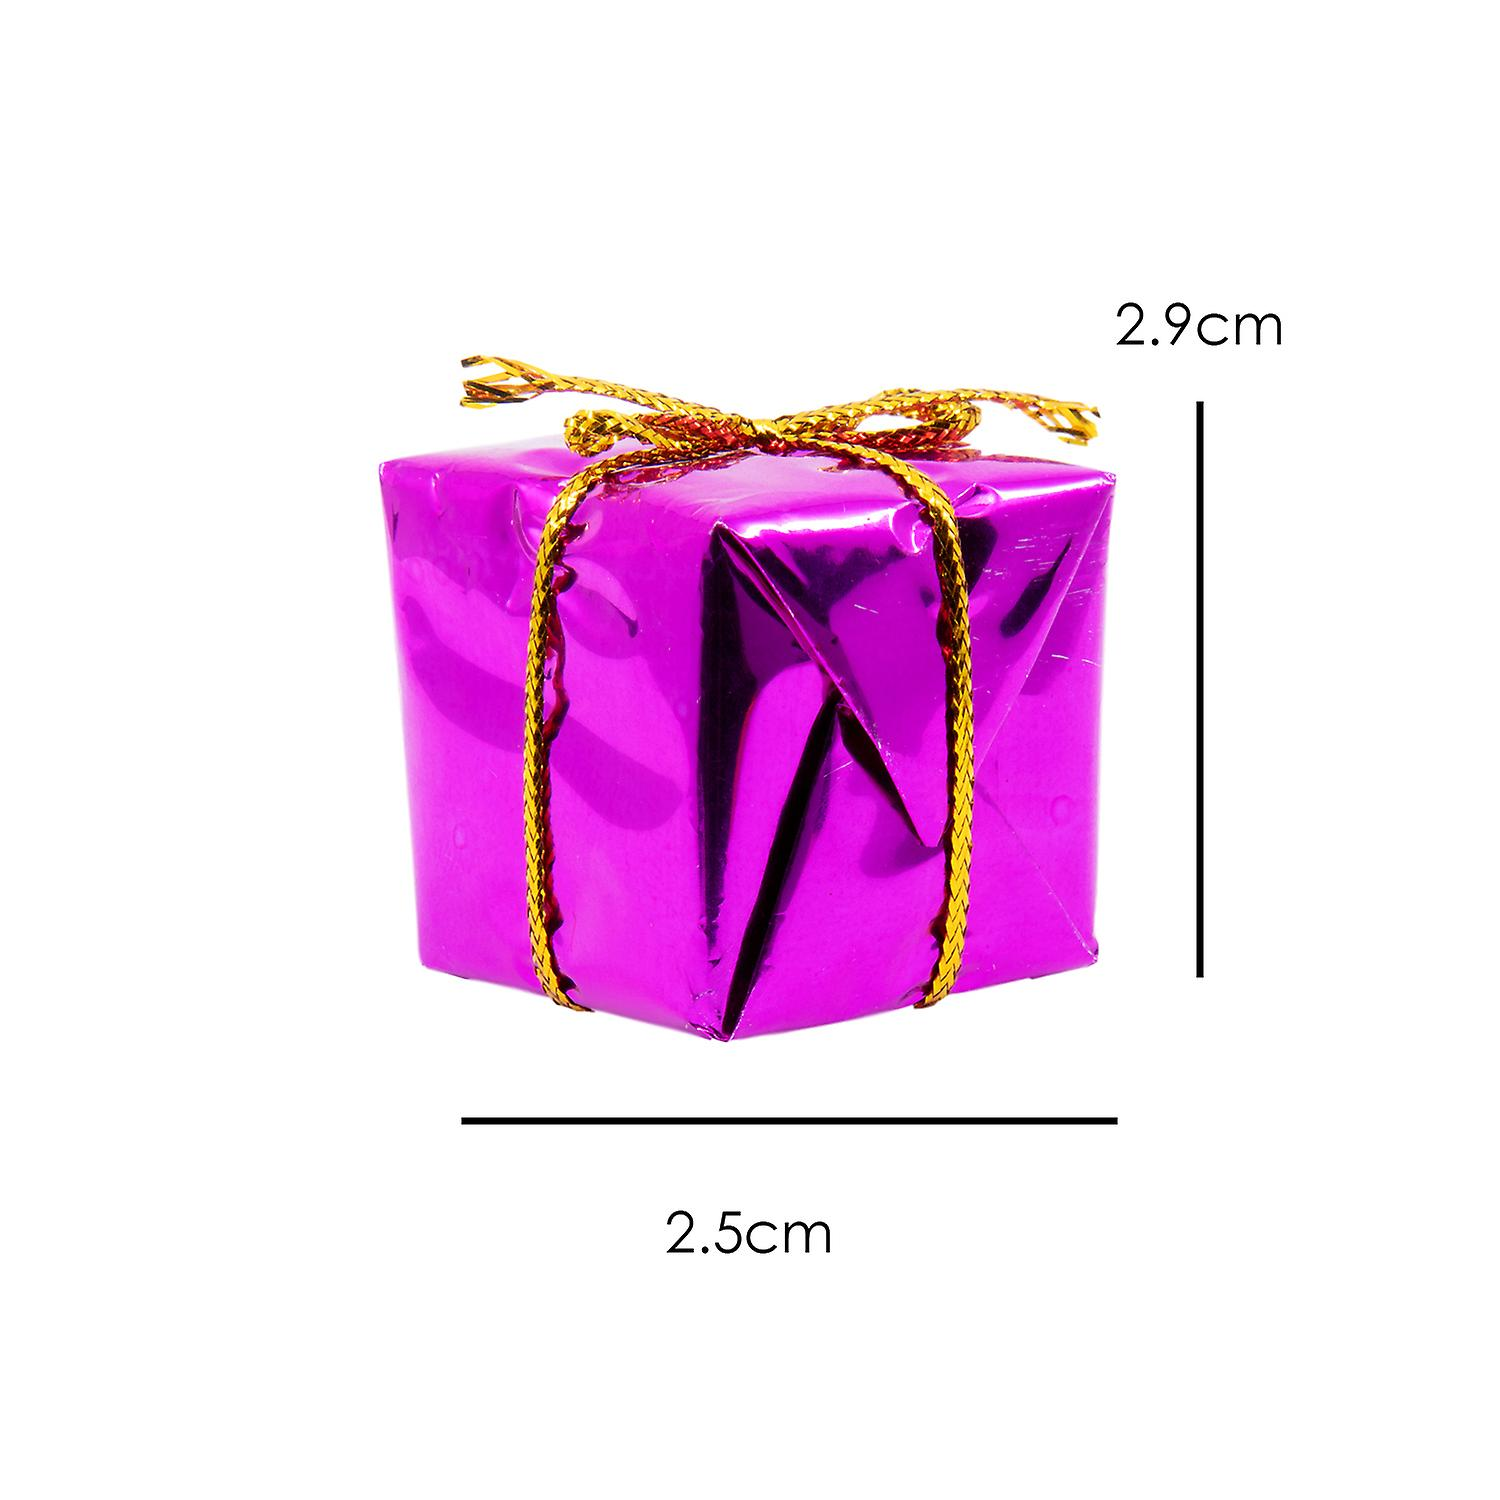 TRIXES Set of 12 Glitzy Christmas Box Hanging Tree Decorations in Assorted Colours